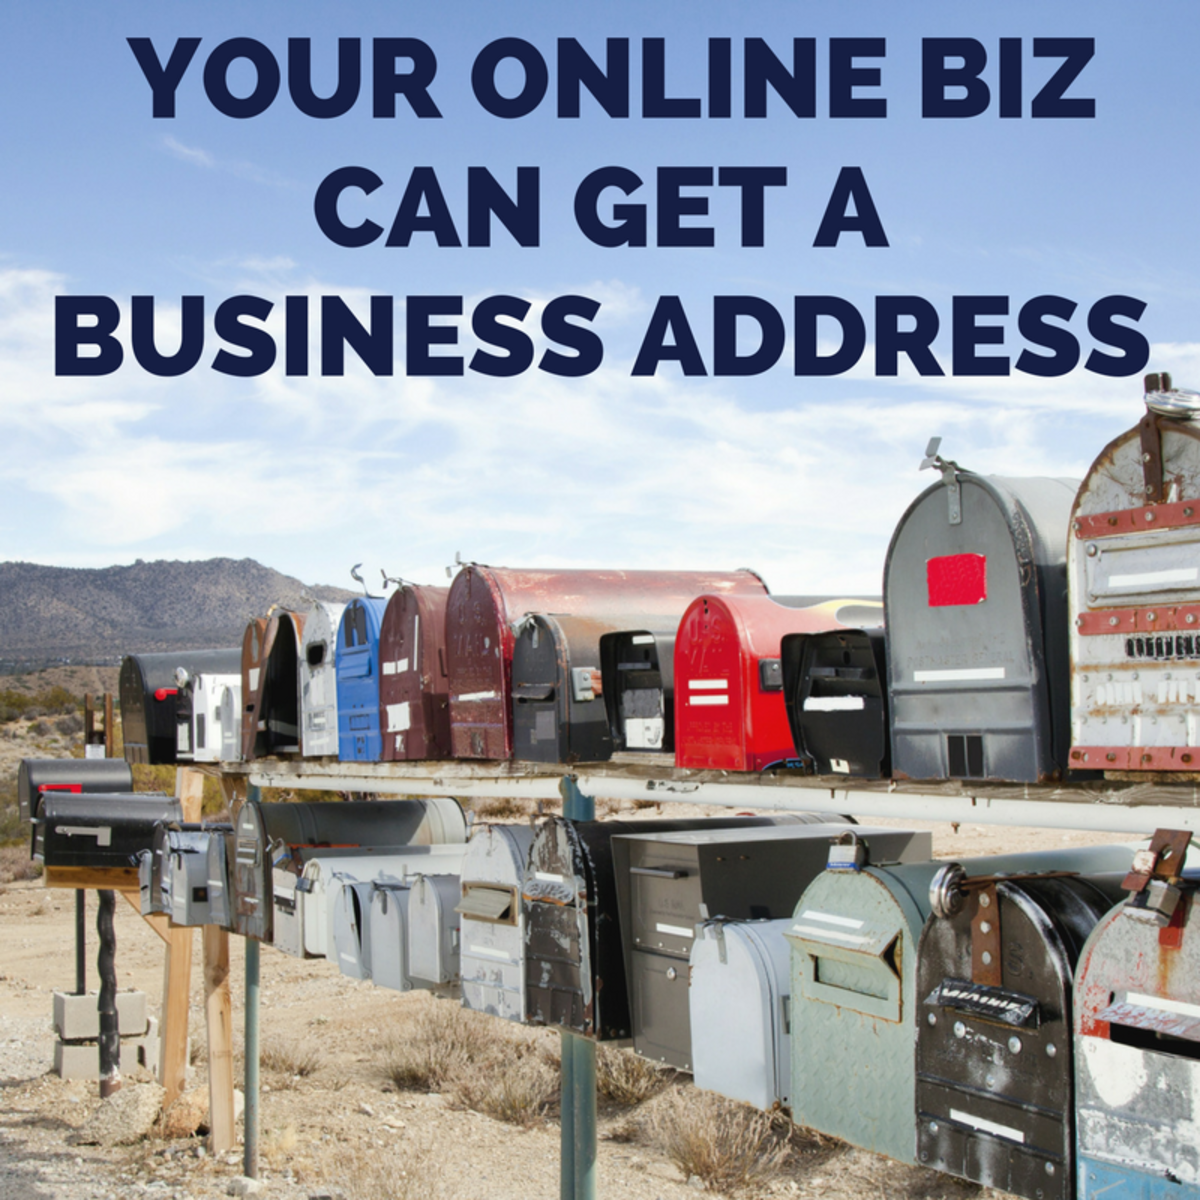 How to Get a Business Address for Your At-Home or E-Commerce Business